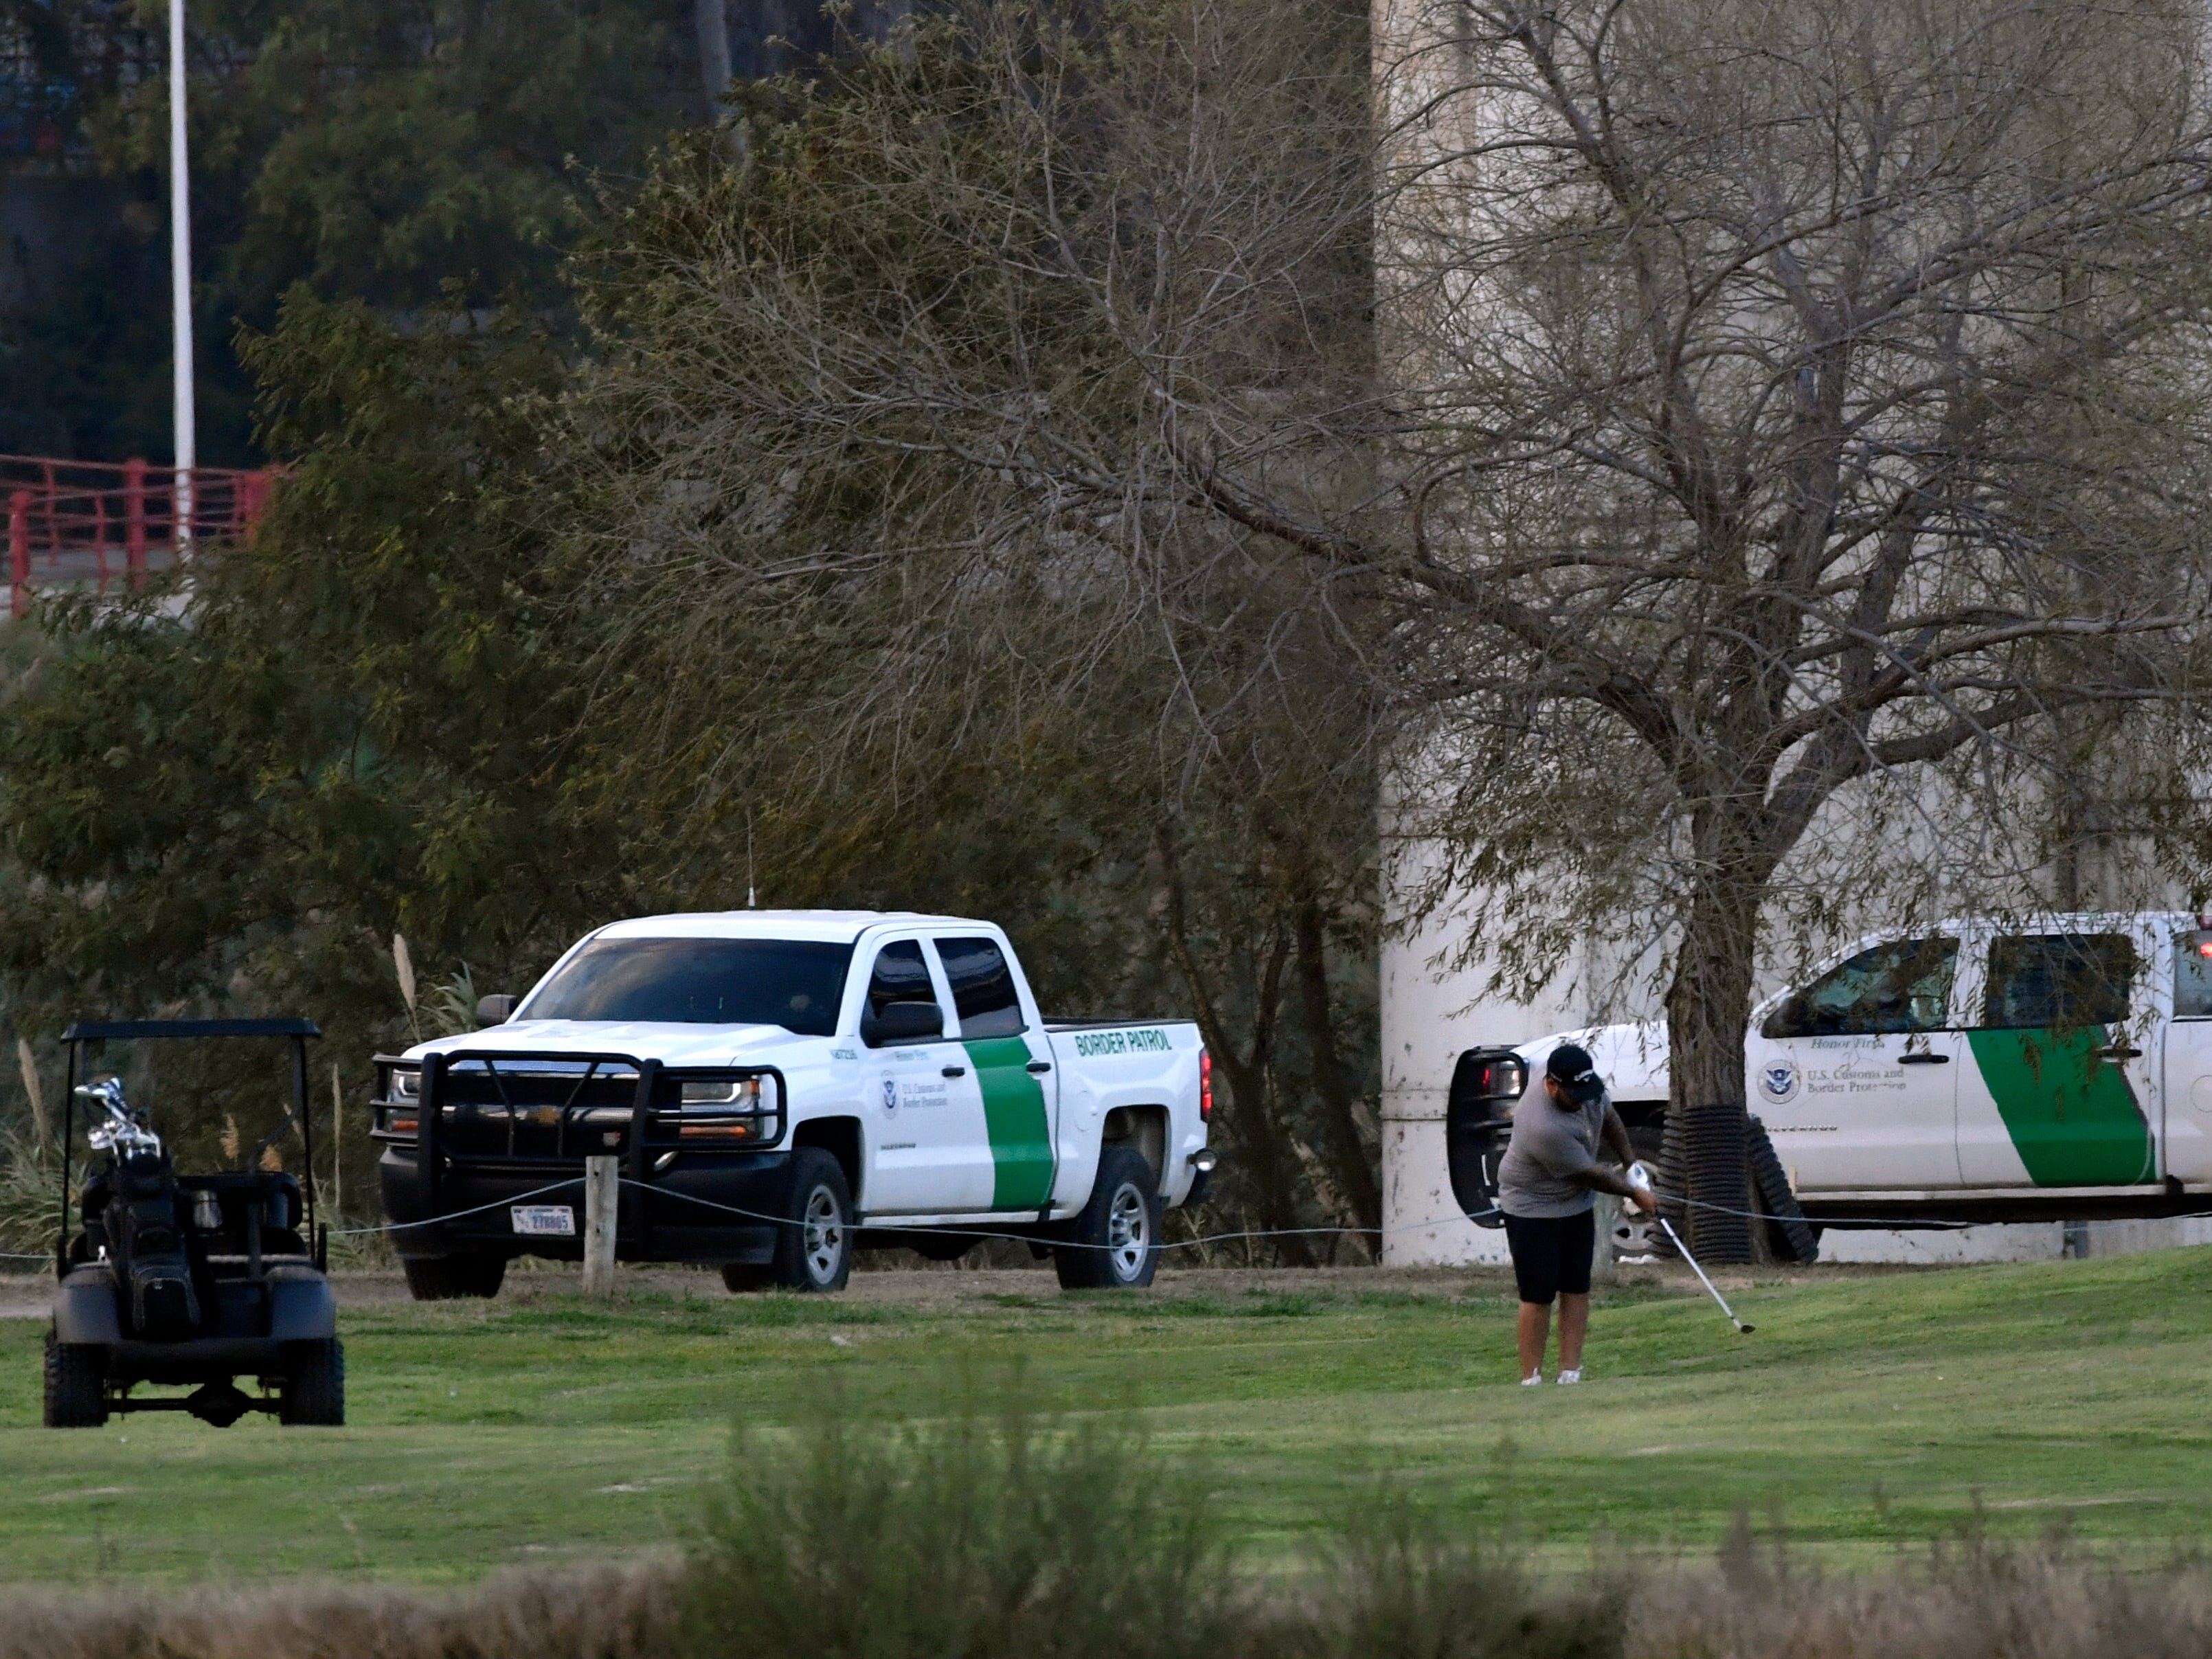 A golfer swings while border patrol vehicles stand guard beneath the Eagle Pass International Bridge Wednesday Feb. 6, 2019. A caravan of Central American migrants has arrived in Piedras Negras and border law enforcement officials have increased their presence in response.